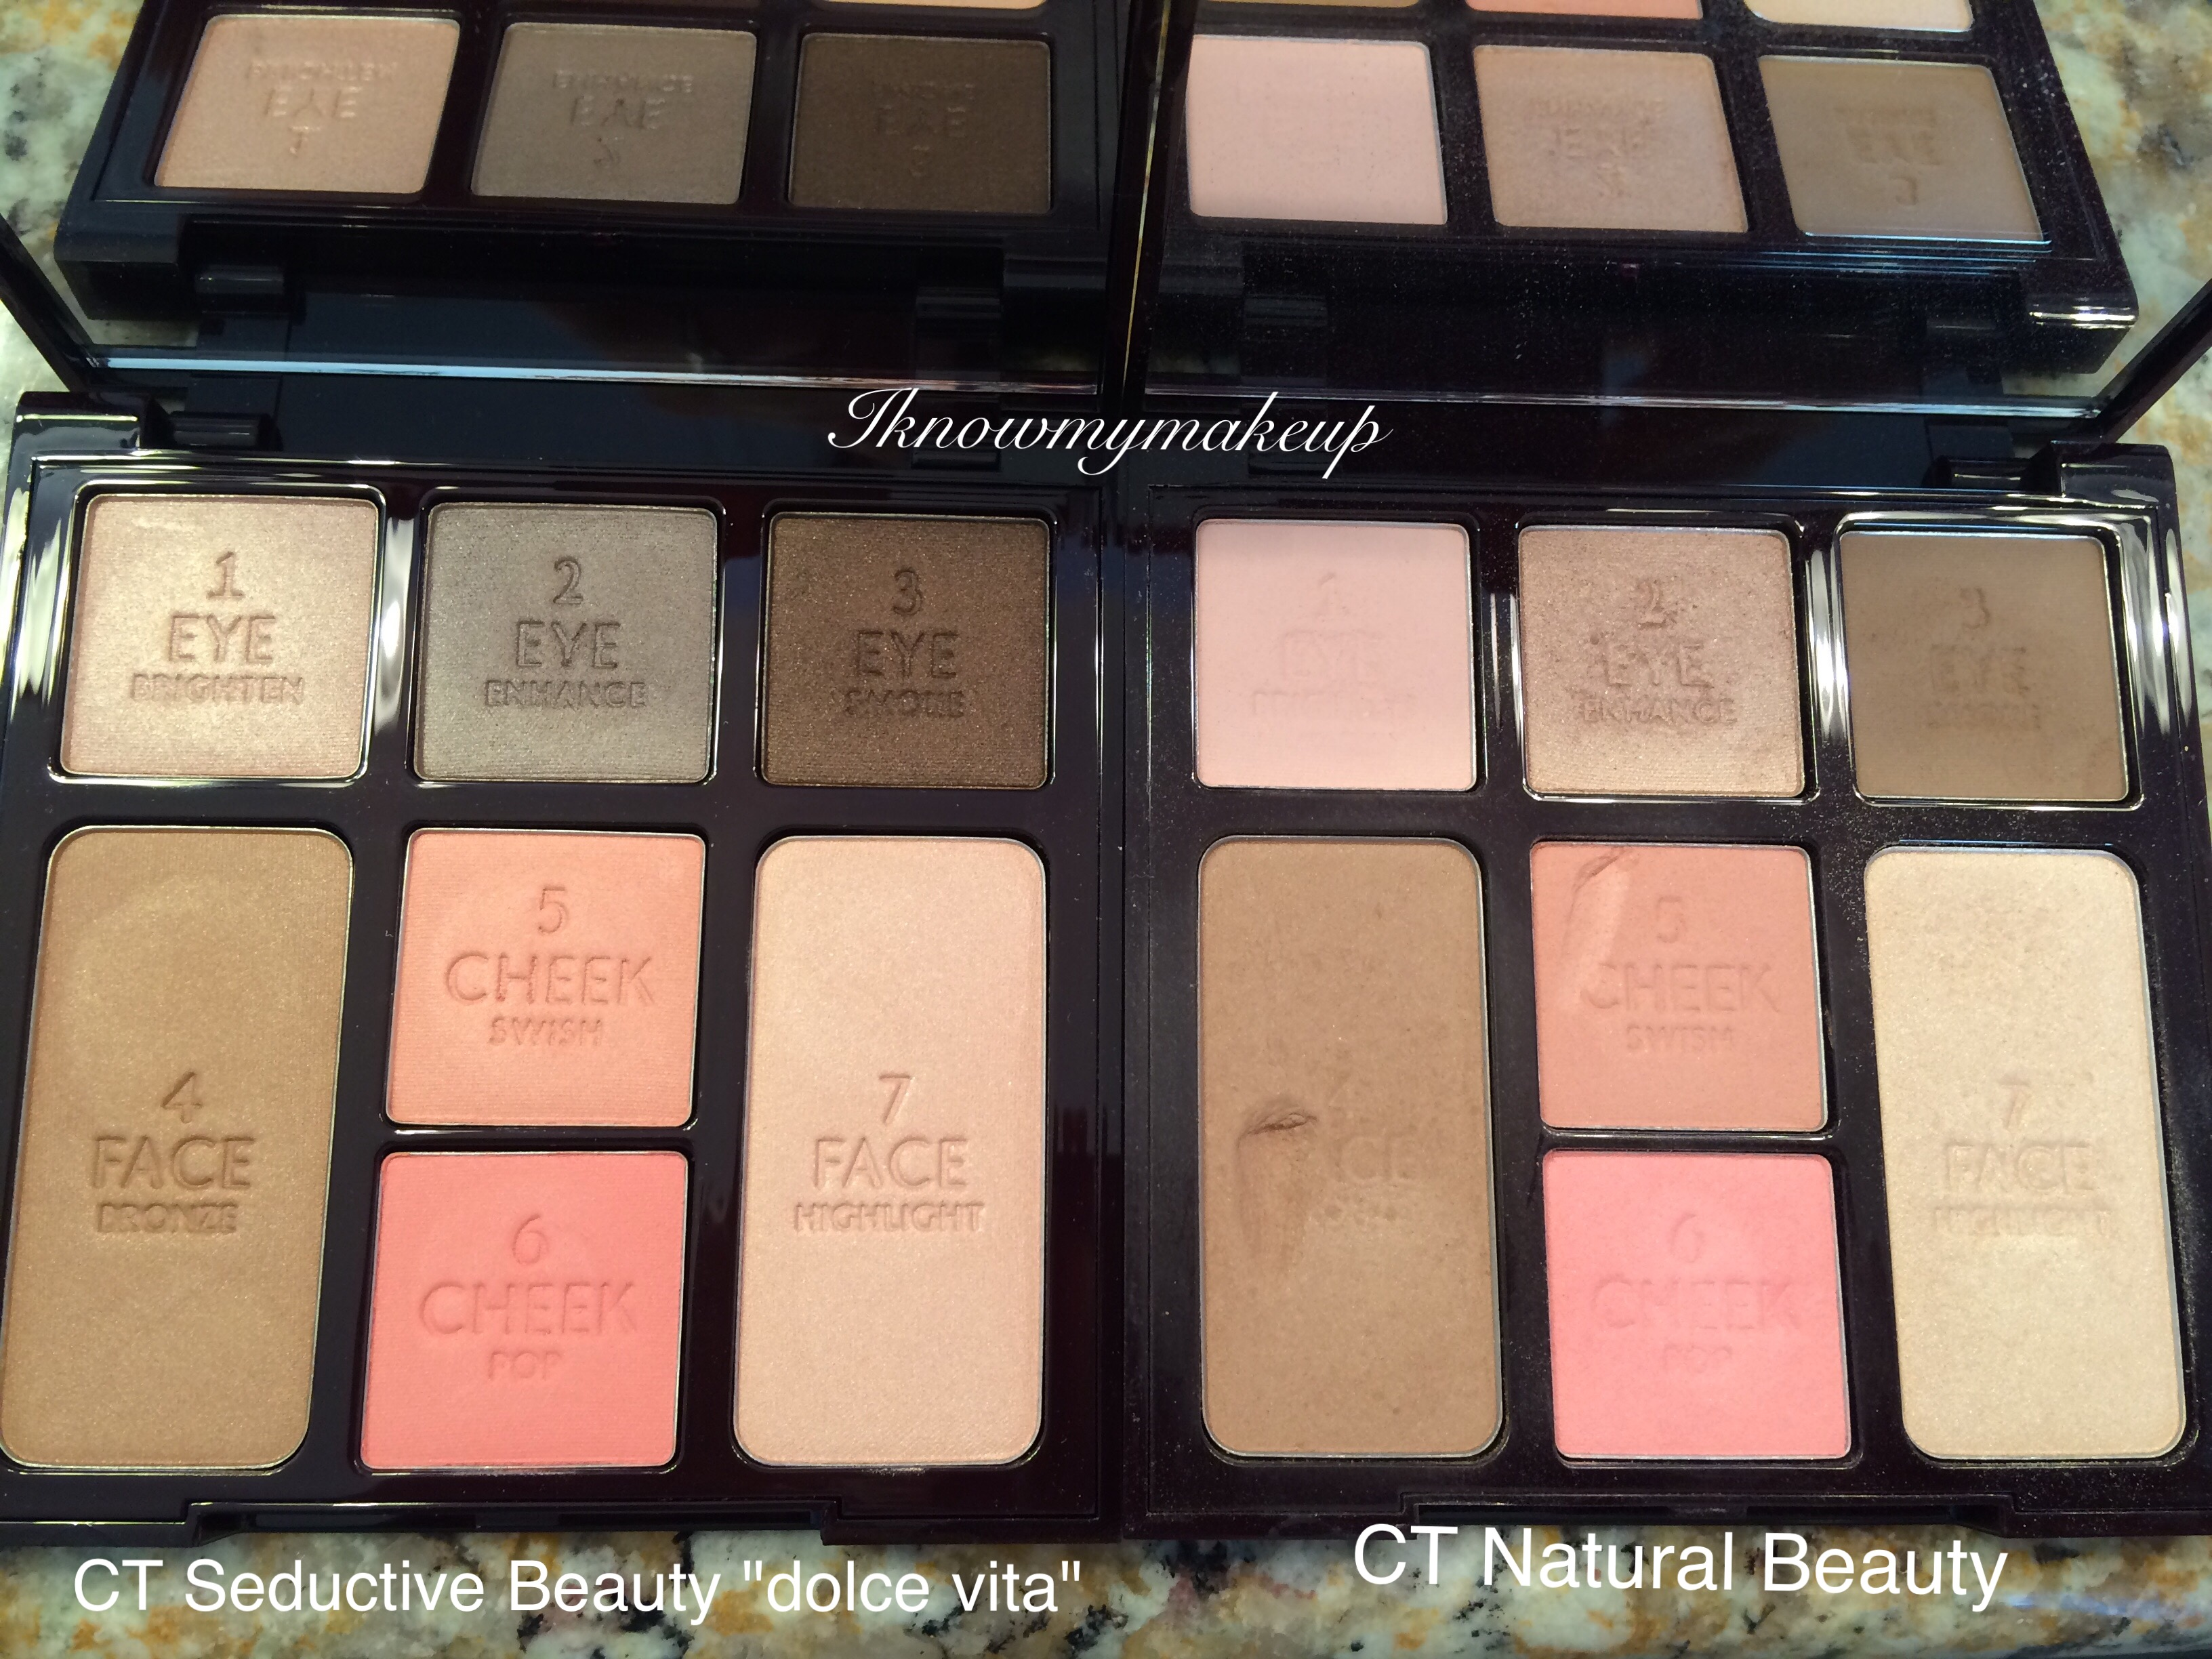 881a4b3ab51bf Charlotte Tilbury Natural Beauty Palette  Suited for more fair to light  complexions 3 COLOR CODED EYESHADOWS – 3 Shades to Brighten